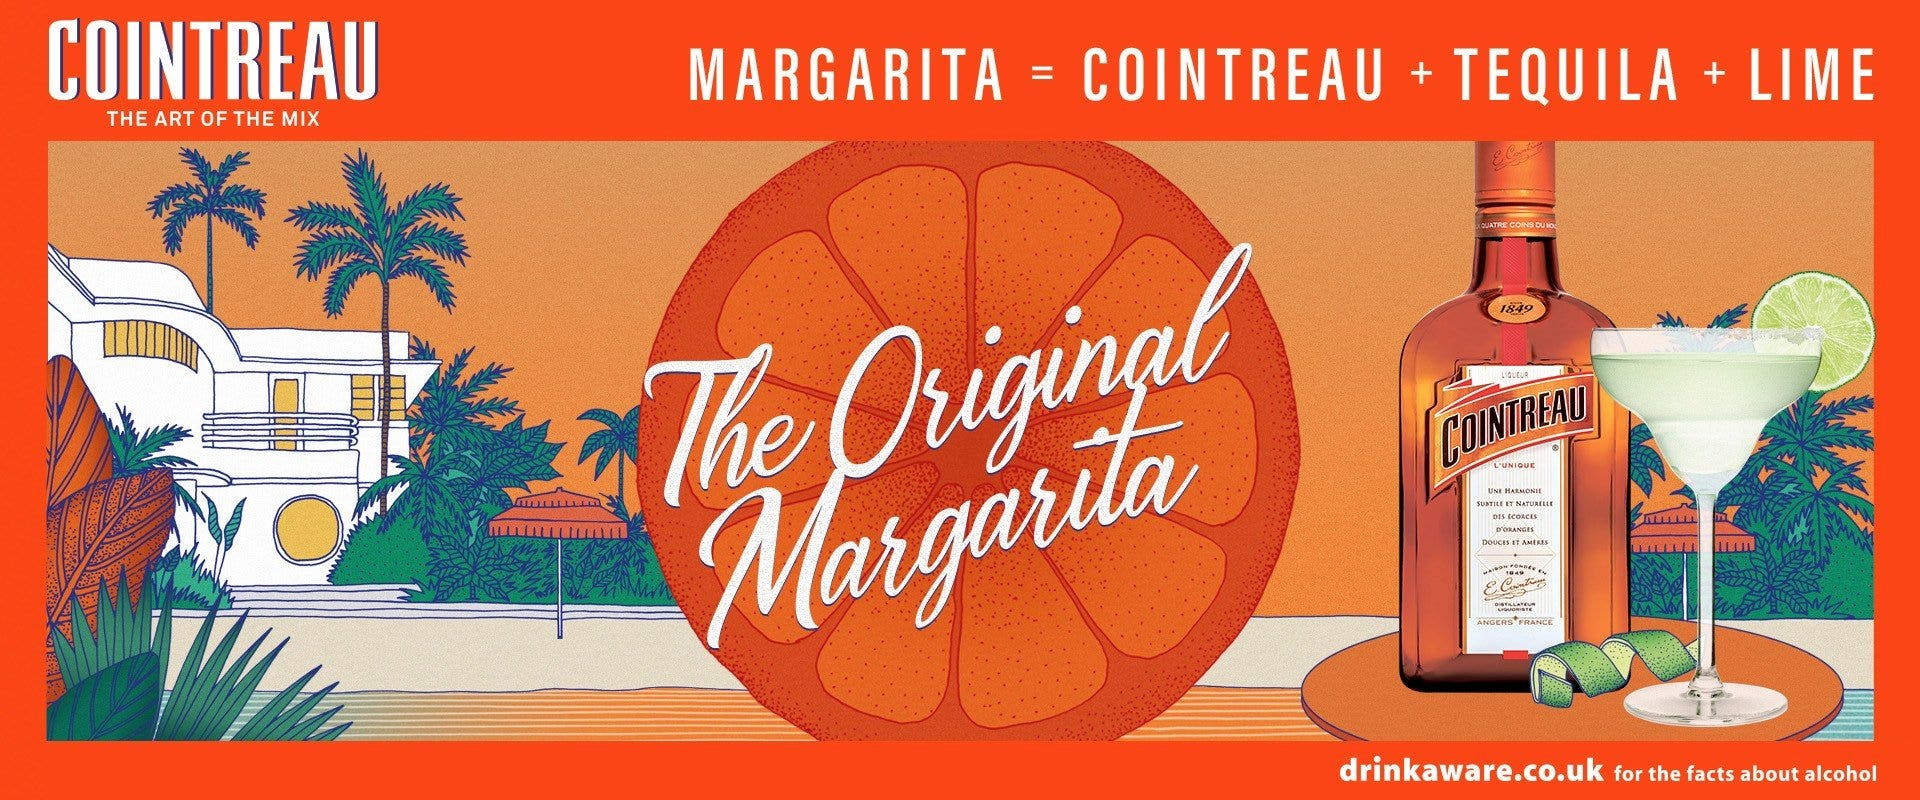 Cointreau - The Art of The Mix